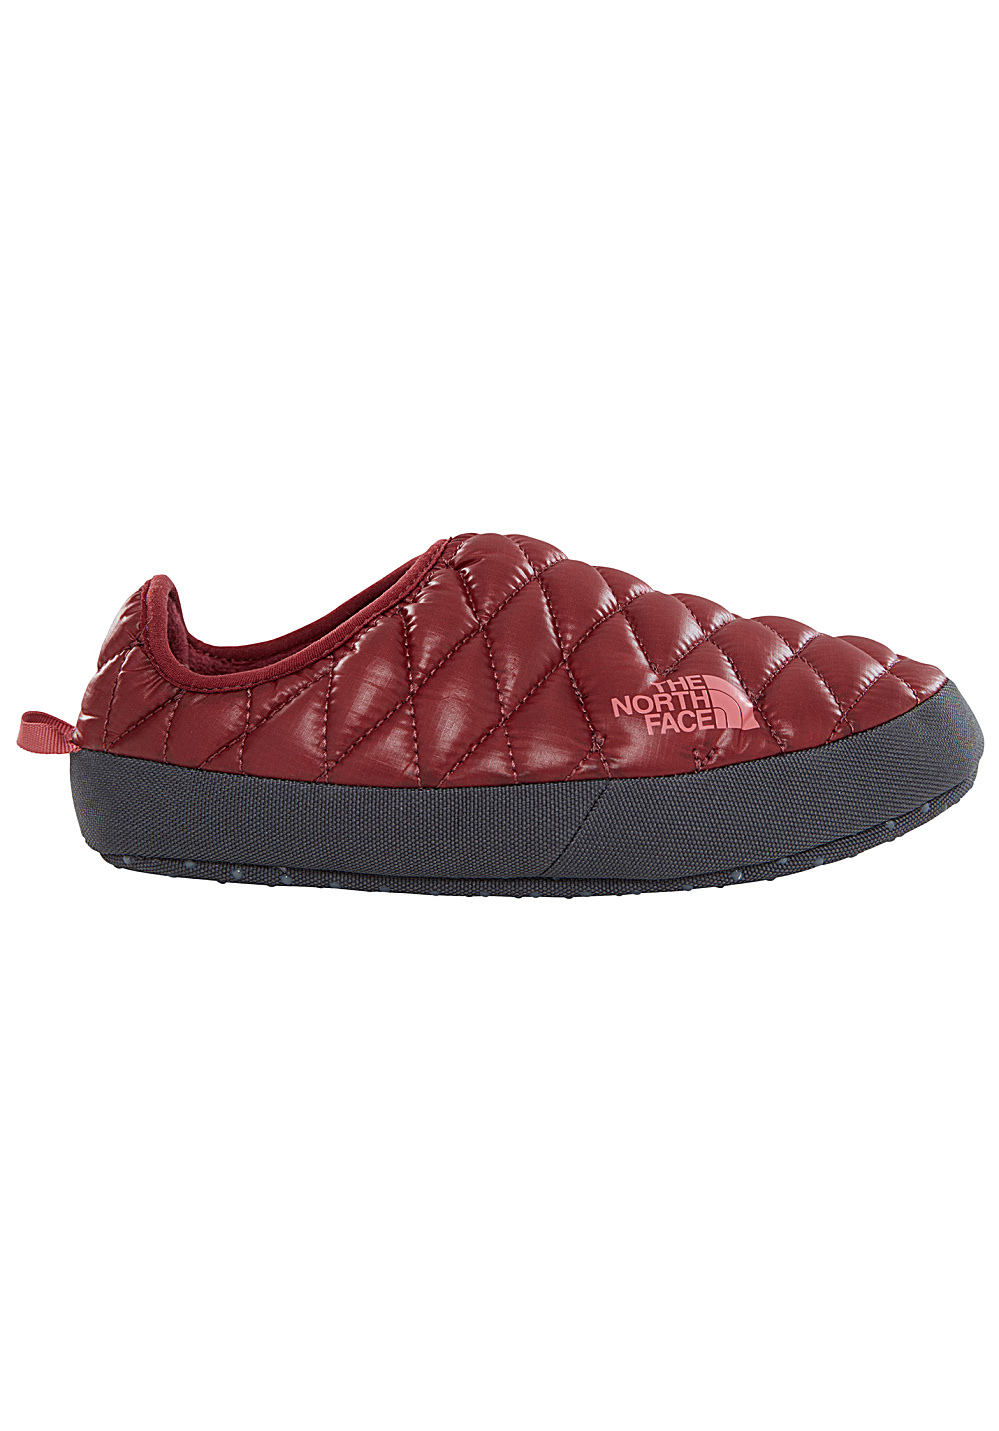 newest 80f70 9cc4d THE NORTH FACE Thermoball Tent Mule 4 - Pantofole per Donna - Rosso